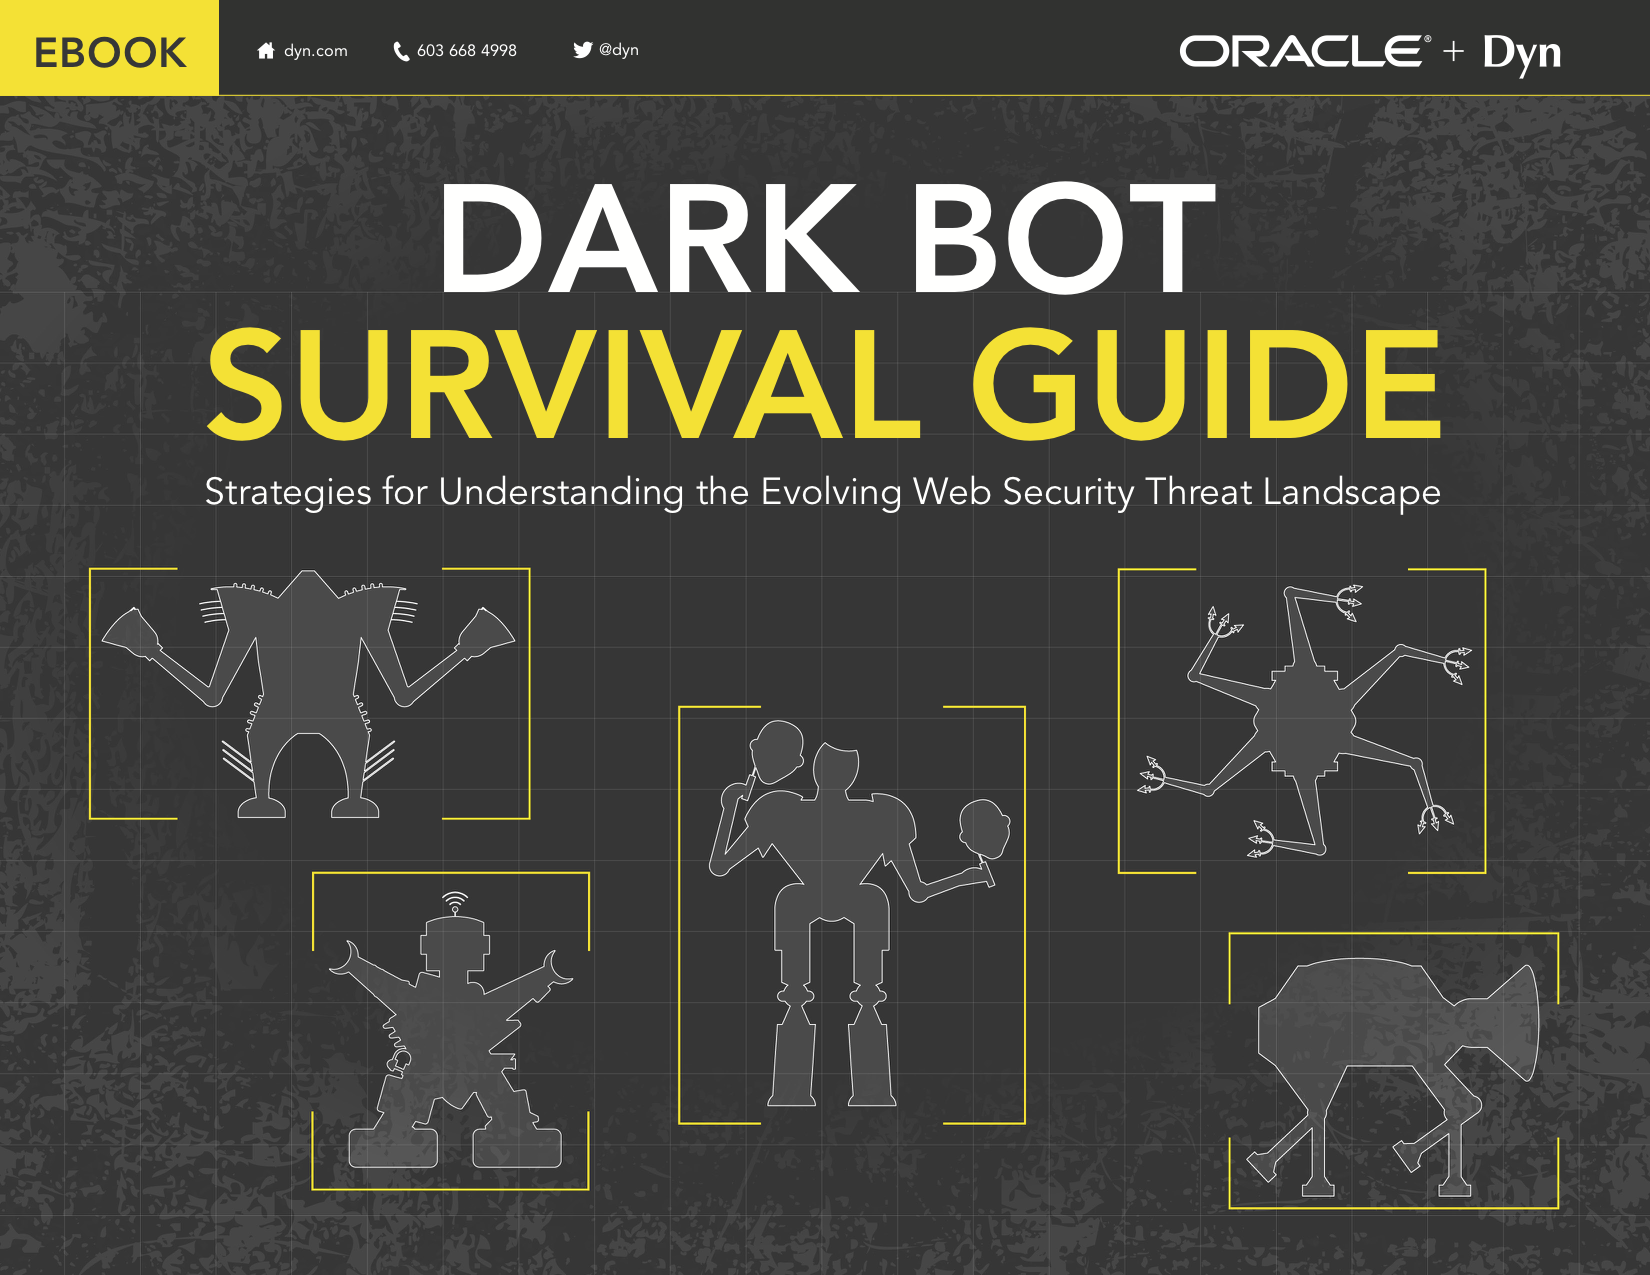 DarkBot Survival Guide_final 1